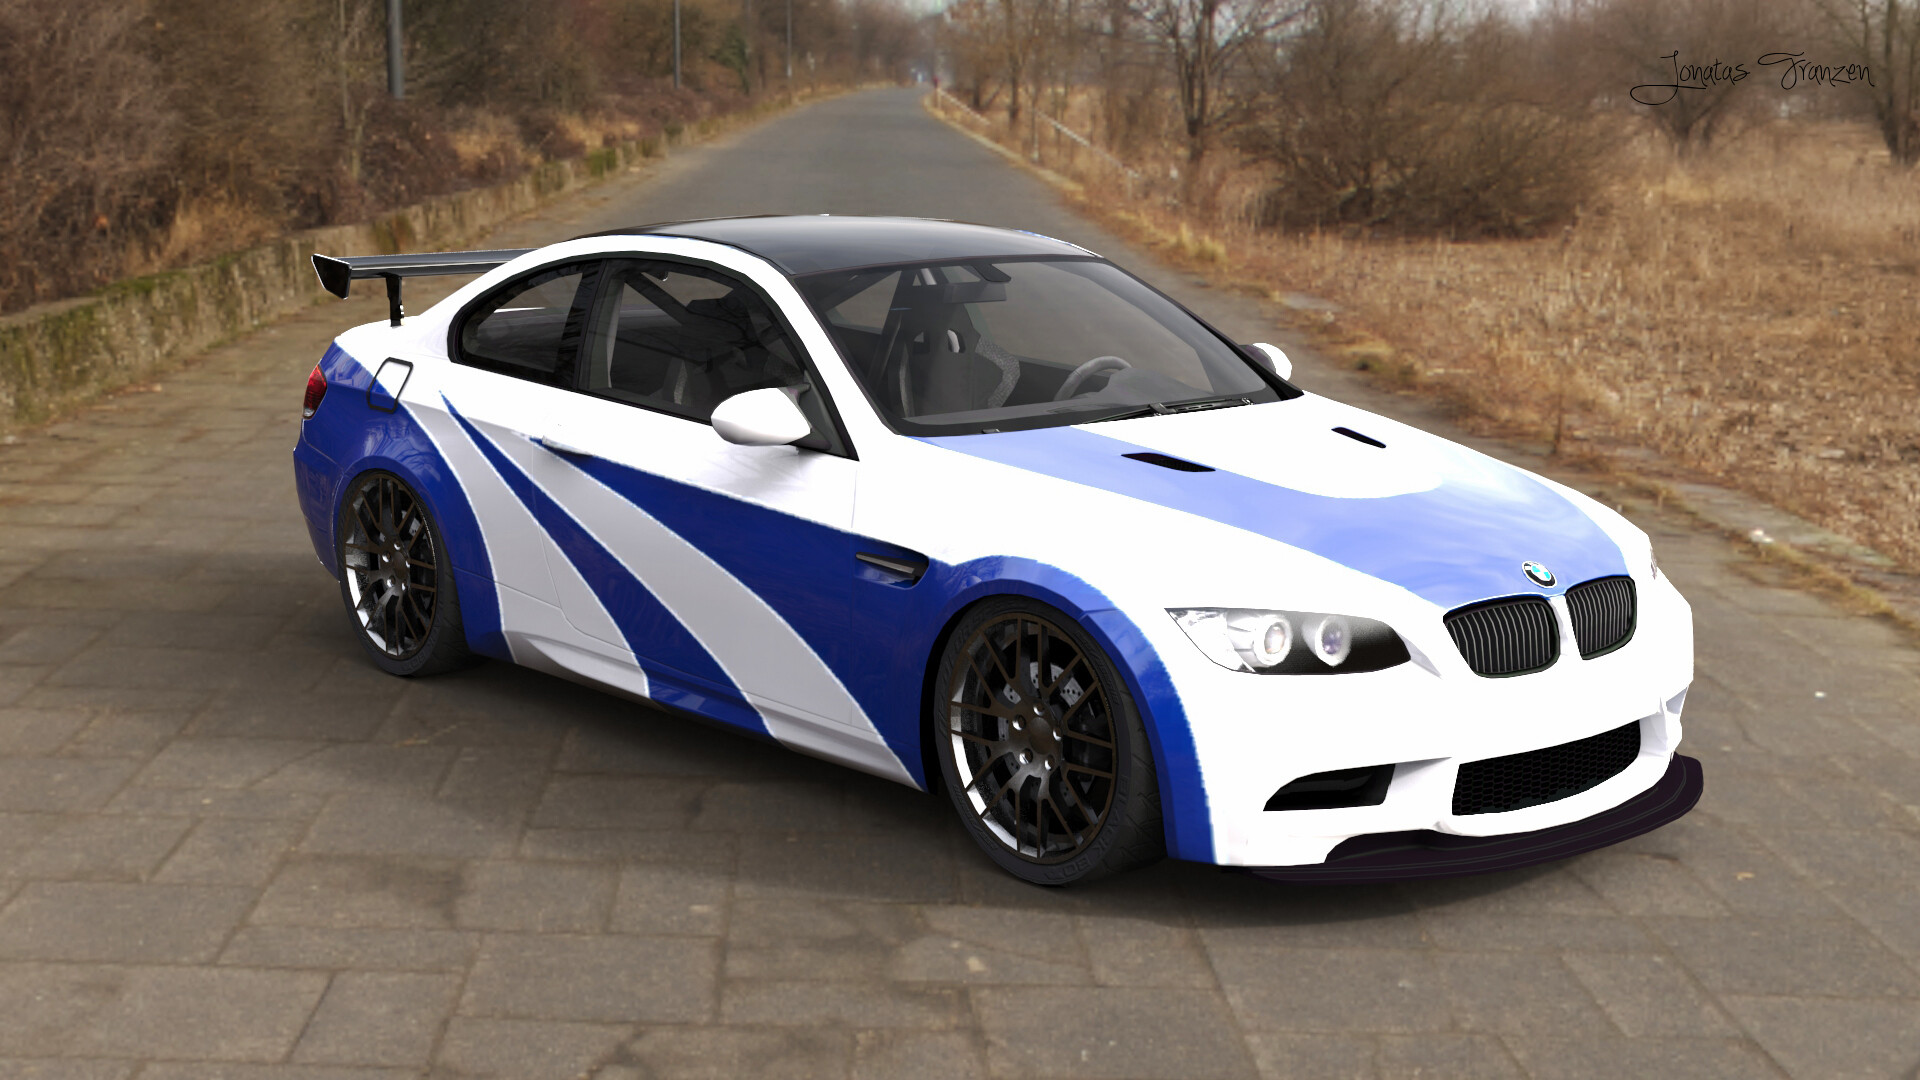 BMW M3 GTR in Real life - Need for Speed: Most Wanted (2005)